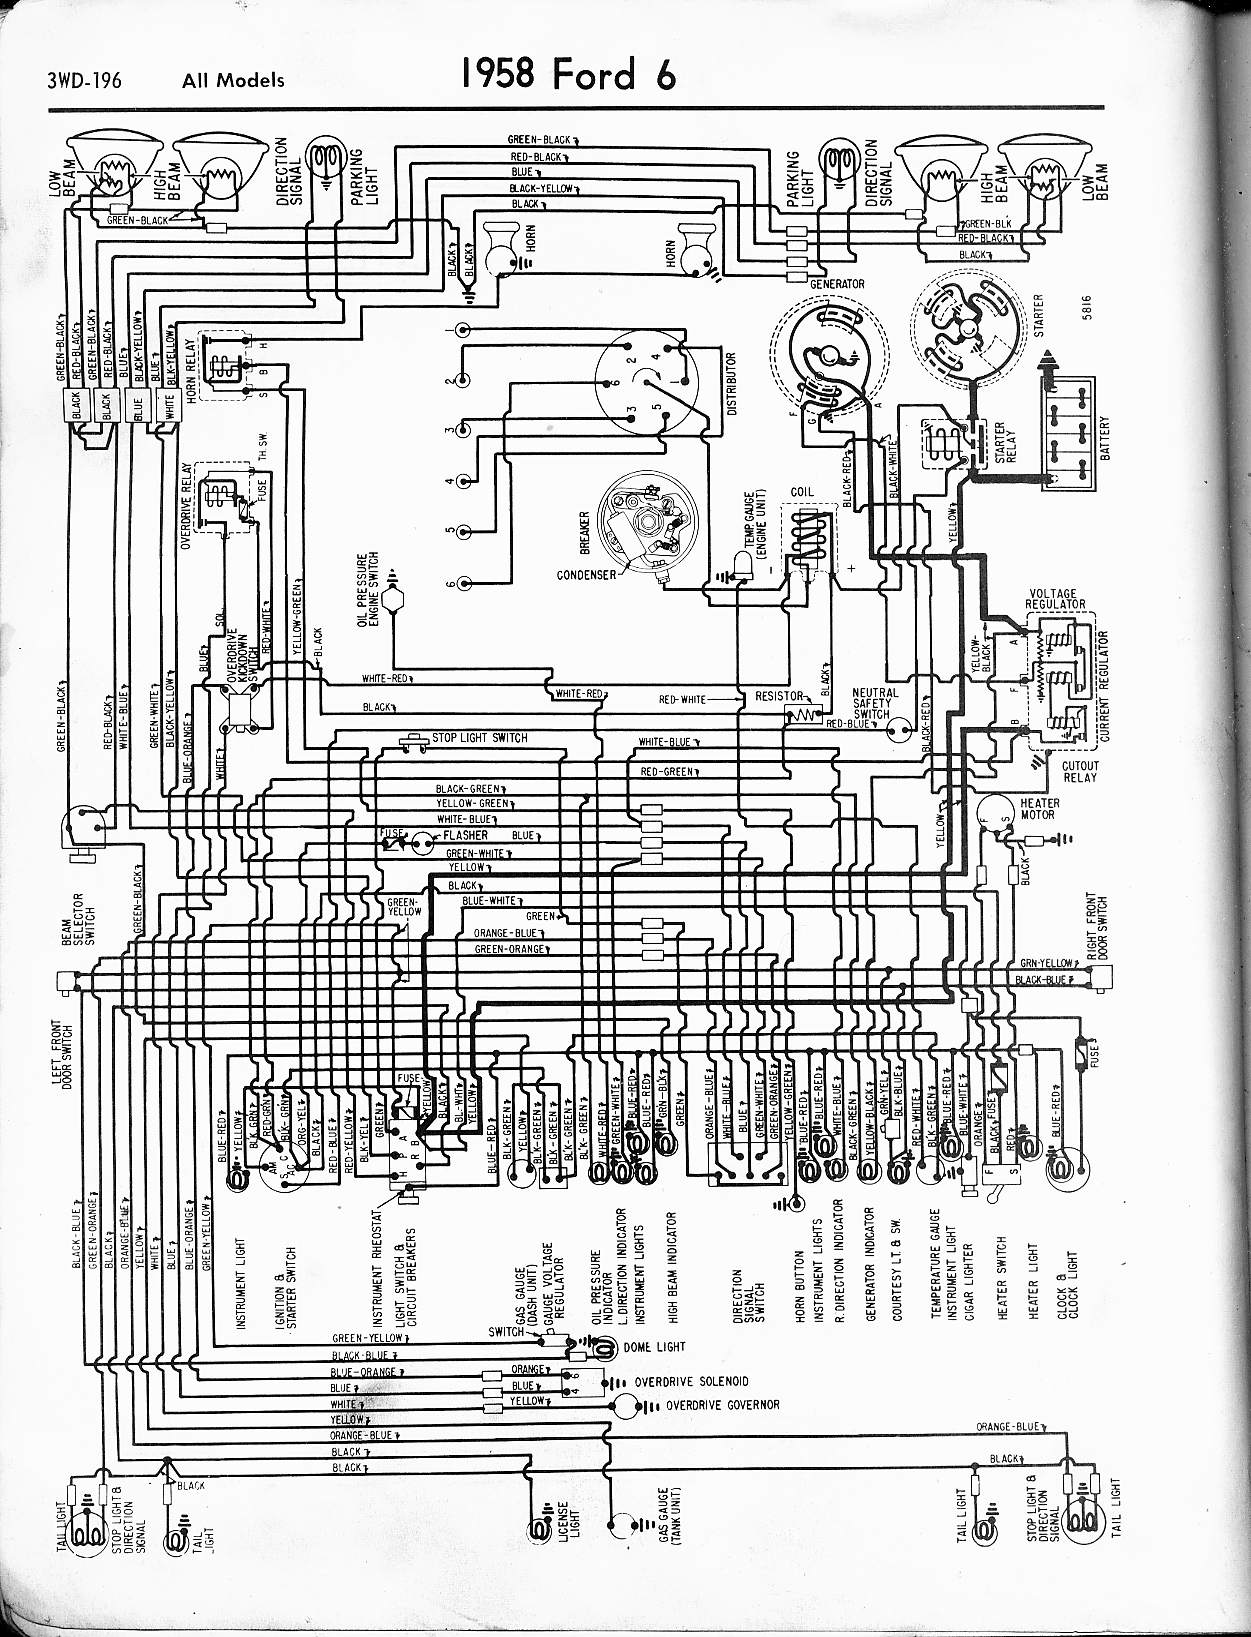 MWire5765 196 57 65 ford wiring diagrams wiring diagram for 1948 ford truck at alyssarenee.co